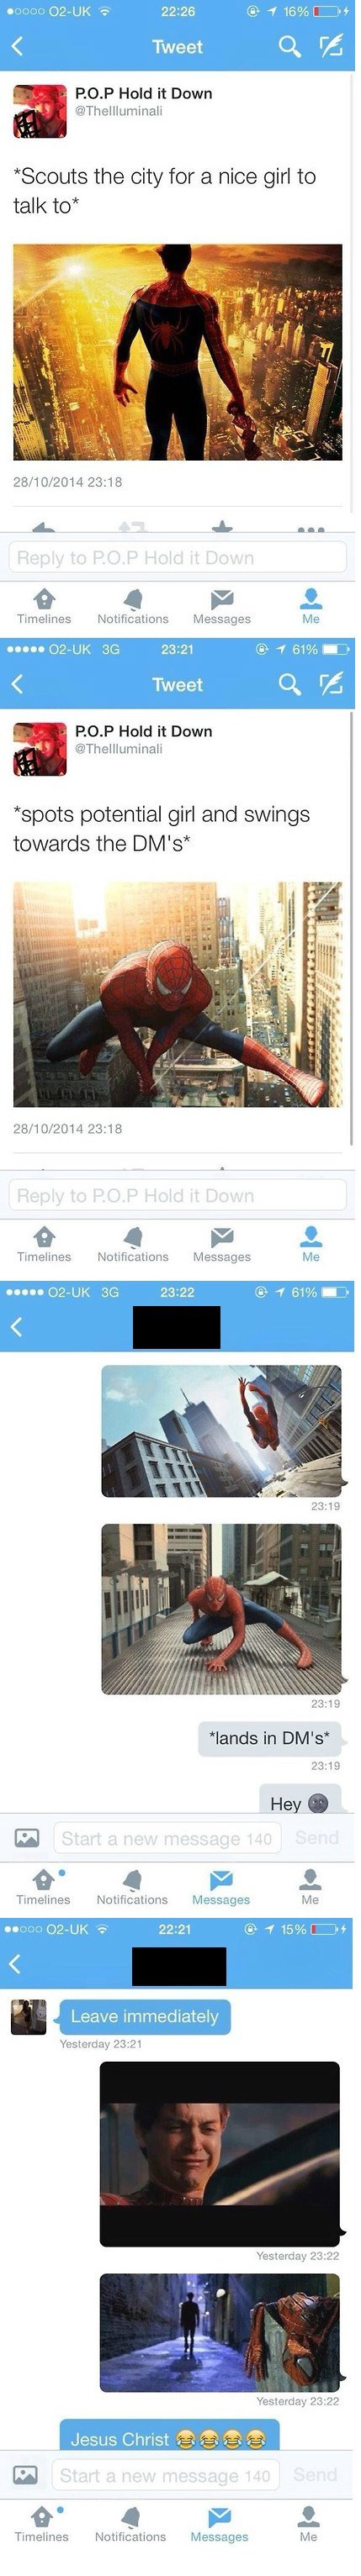 twitter flirting Spider-Man failbook g rated - 8368636416